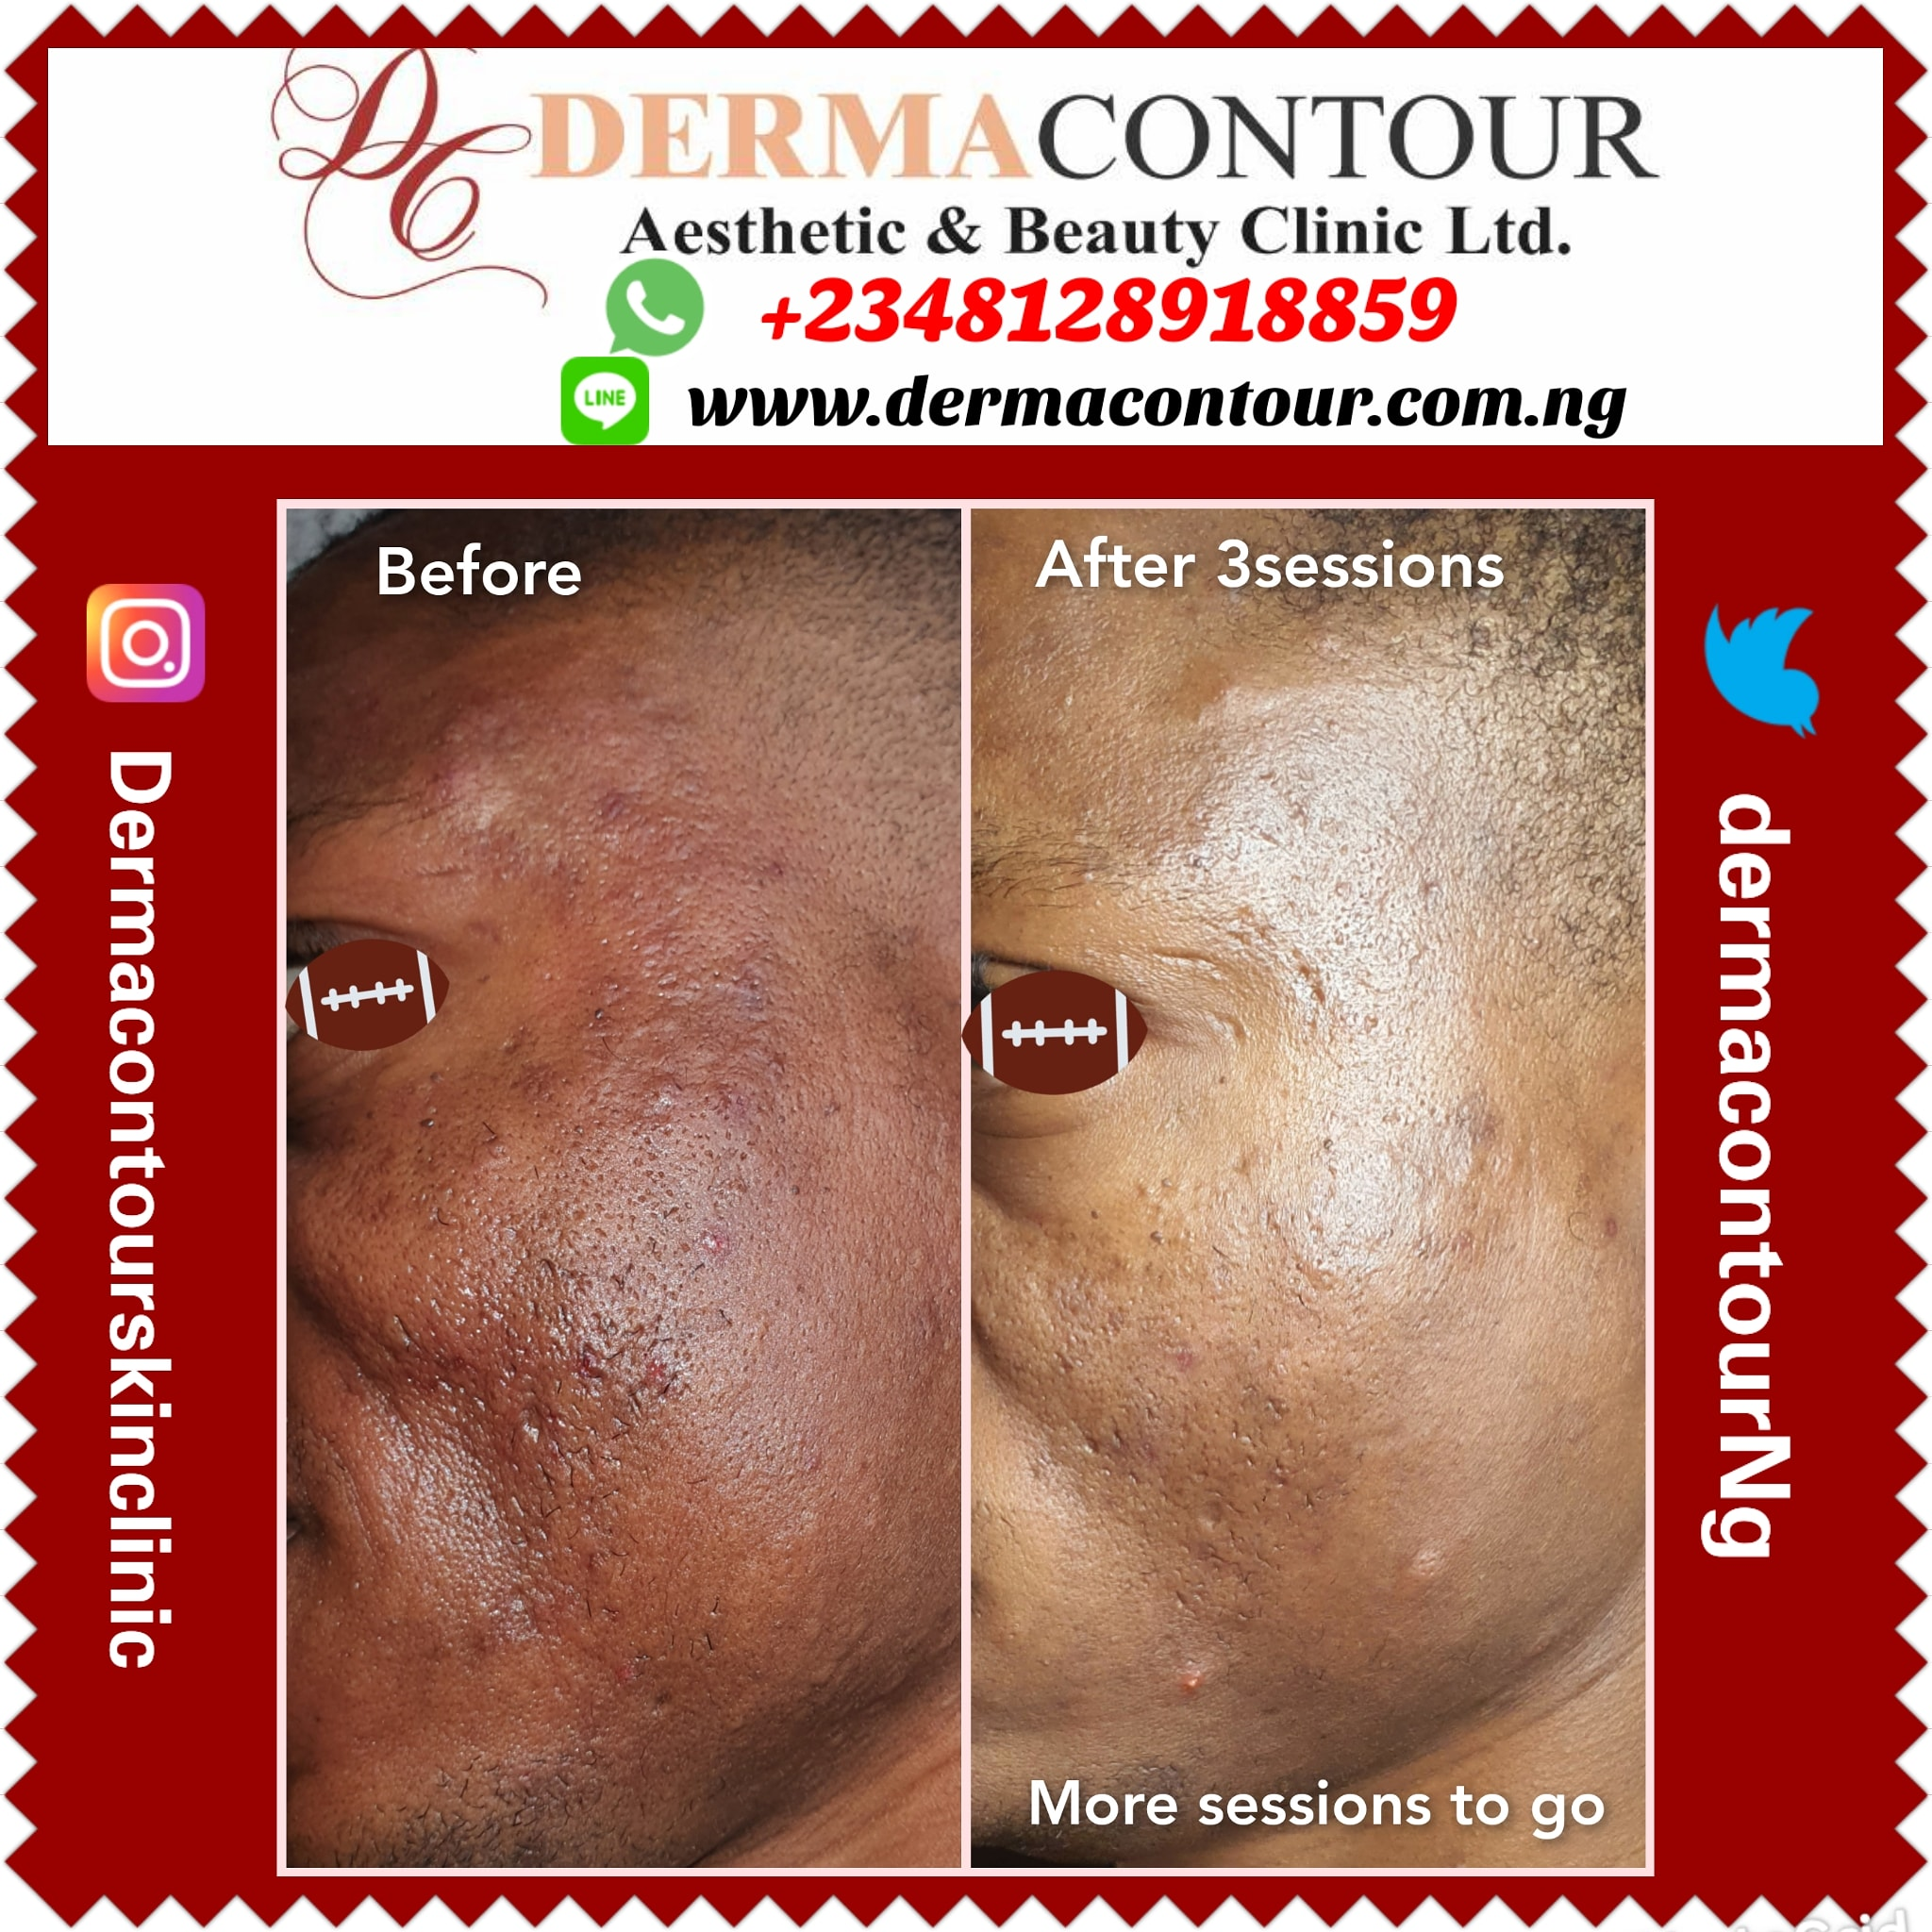 Acne Treatment, Non-surgical fat reduction therapy, Tattoo removal, Acne Treatment Spot Removal Tribal mark removal Dark knees, Dark Knuckles Removal, dark elbow, knees, spots Removal @dermacontourskinclinic #Contour #Aesthetic and #Beauty #Clinic #FCT #Abuja #Nigeria 🇳🇬 #Acnetreament #Acne #Stretchmarkremoval #Scars #Eczema #Pimples #skindamage #Lasertreatment #darkknuckles #skintreatment #Facelift #Tattooremoval #Hairremoval #Cosmetic #tribalmarks #Skindoctor #dermatologist #Skinissues #Bodysculpting #bodycontouring #Fatreduction #teethwhitening #makeup